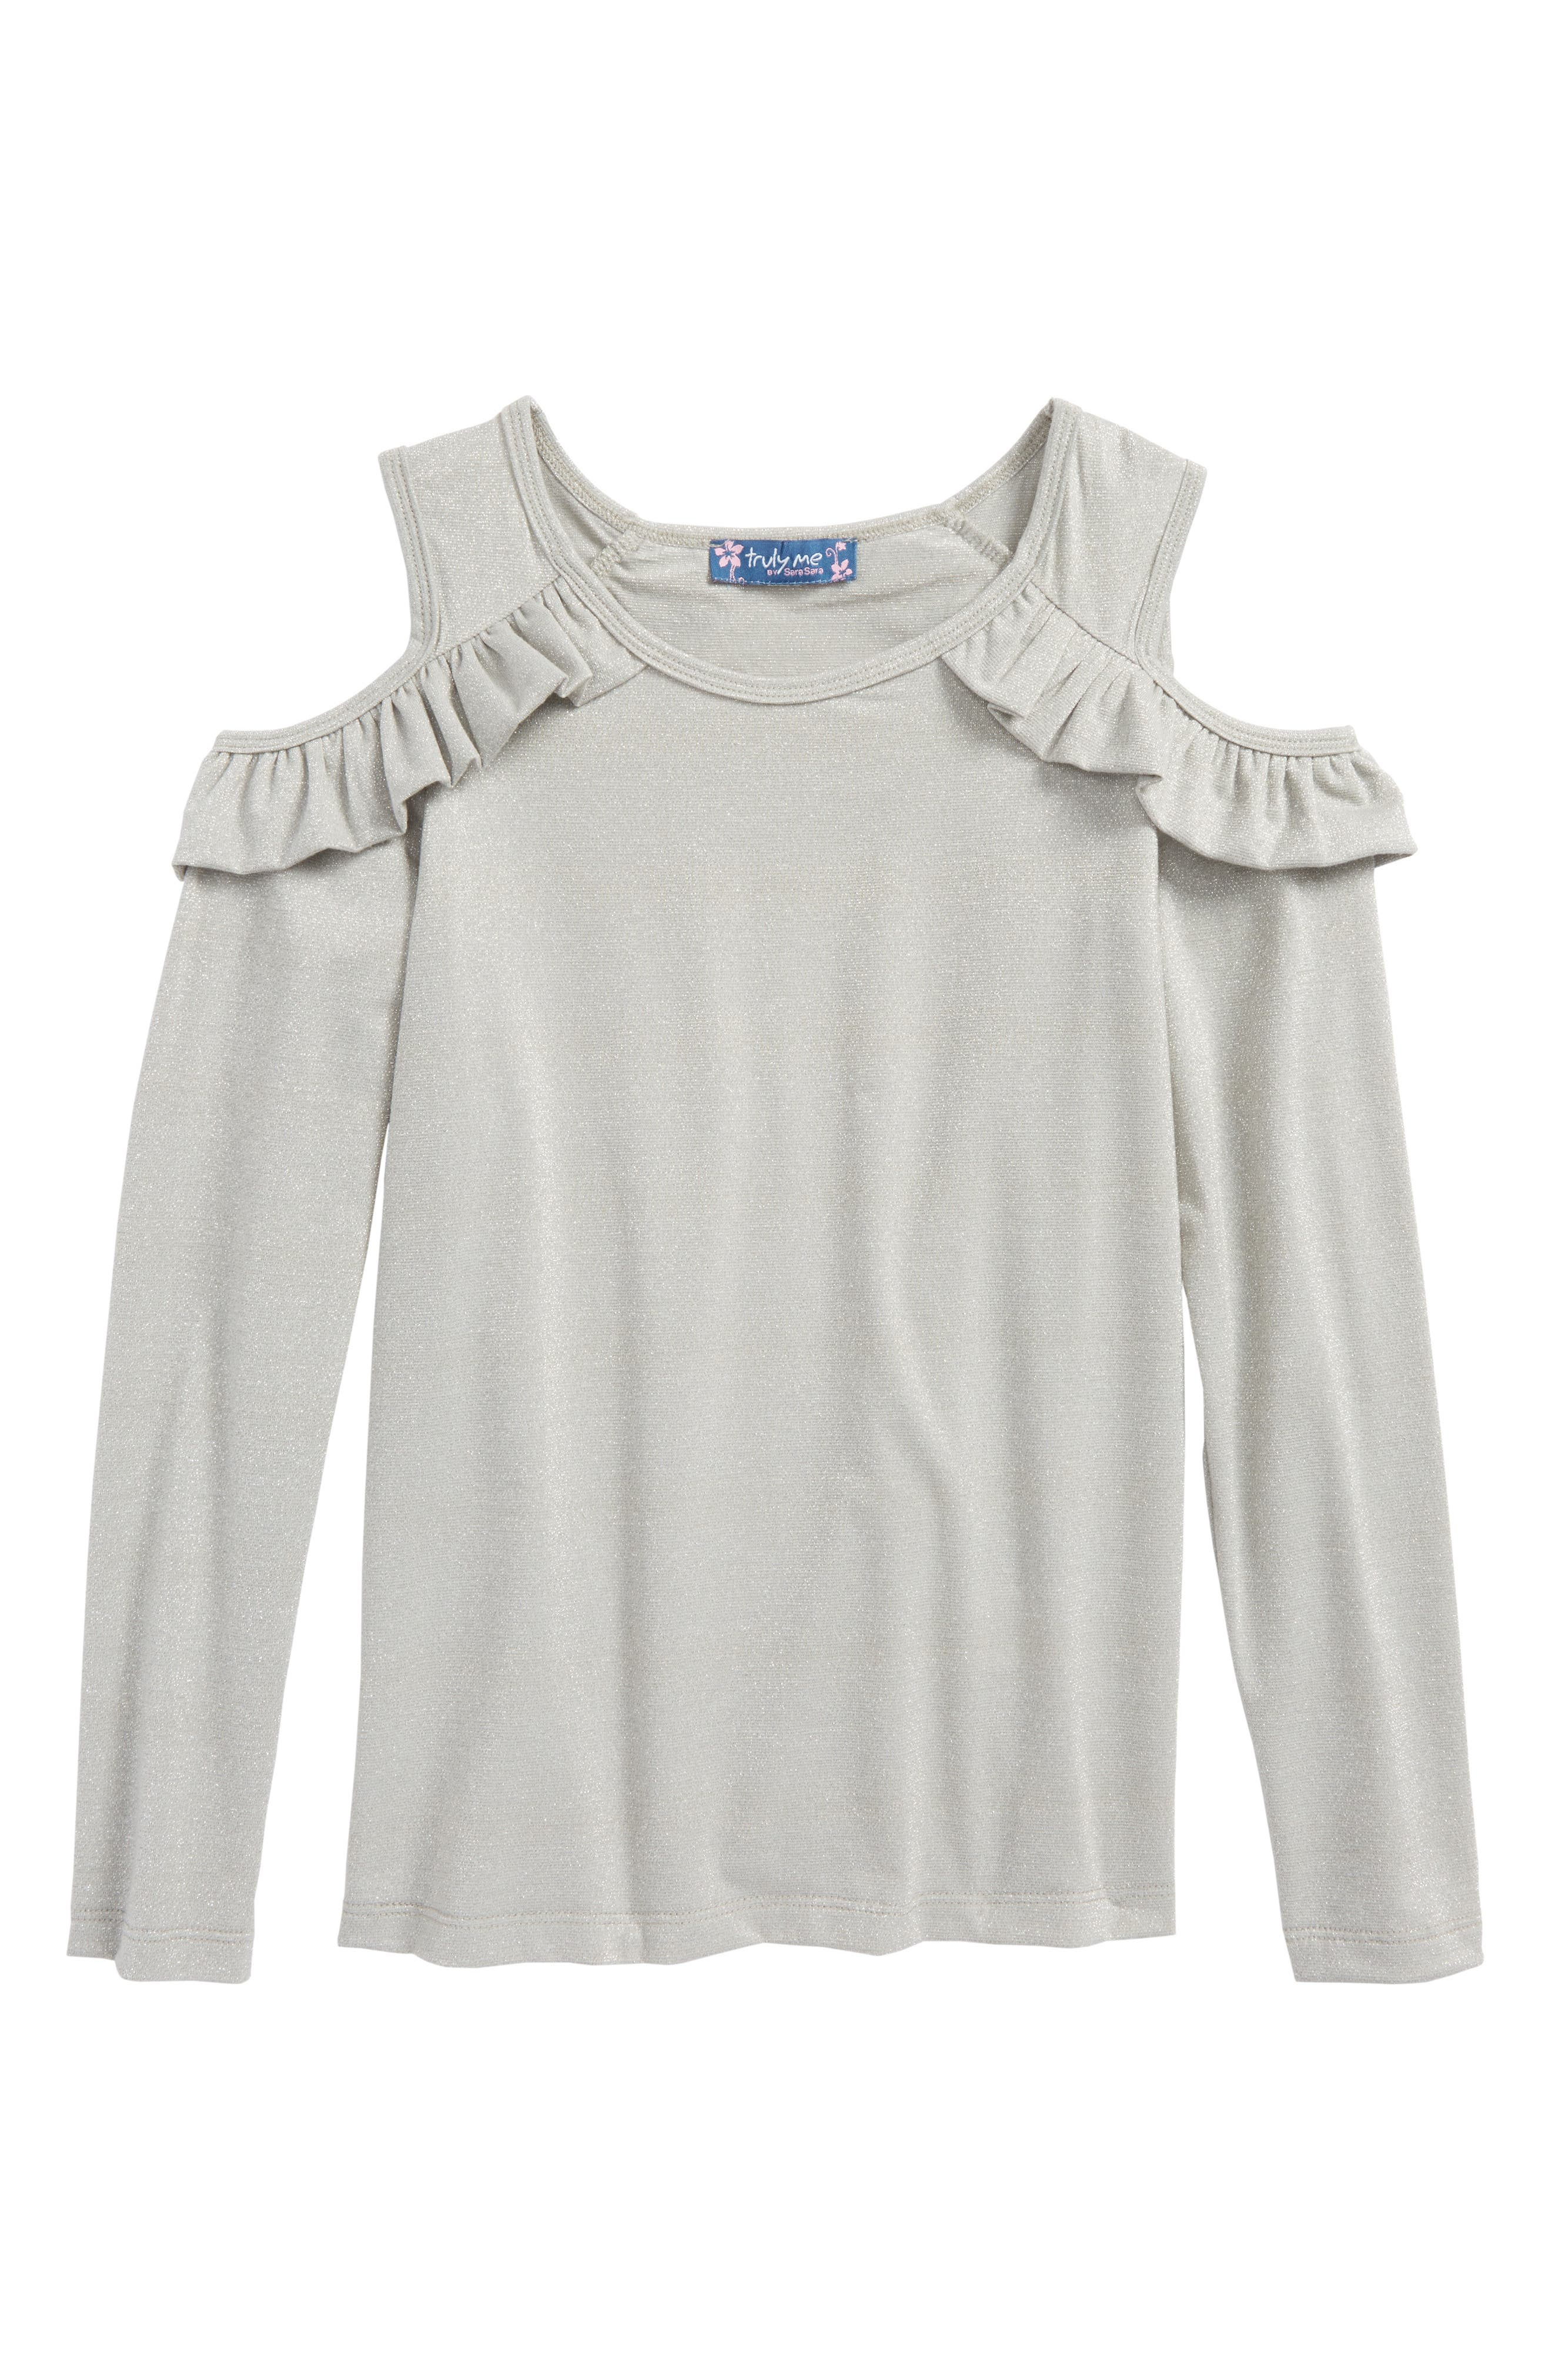 TRULY ME,                             Cold Shoulder Top,                             Main thumbnail 1, color,                             040